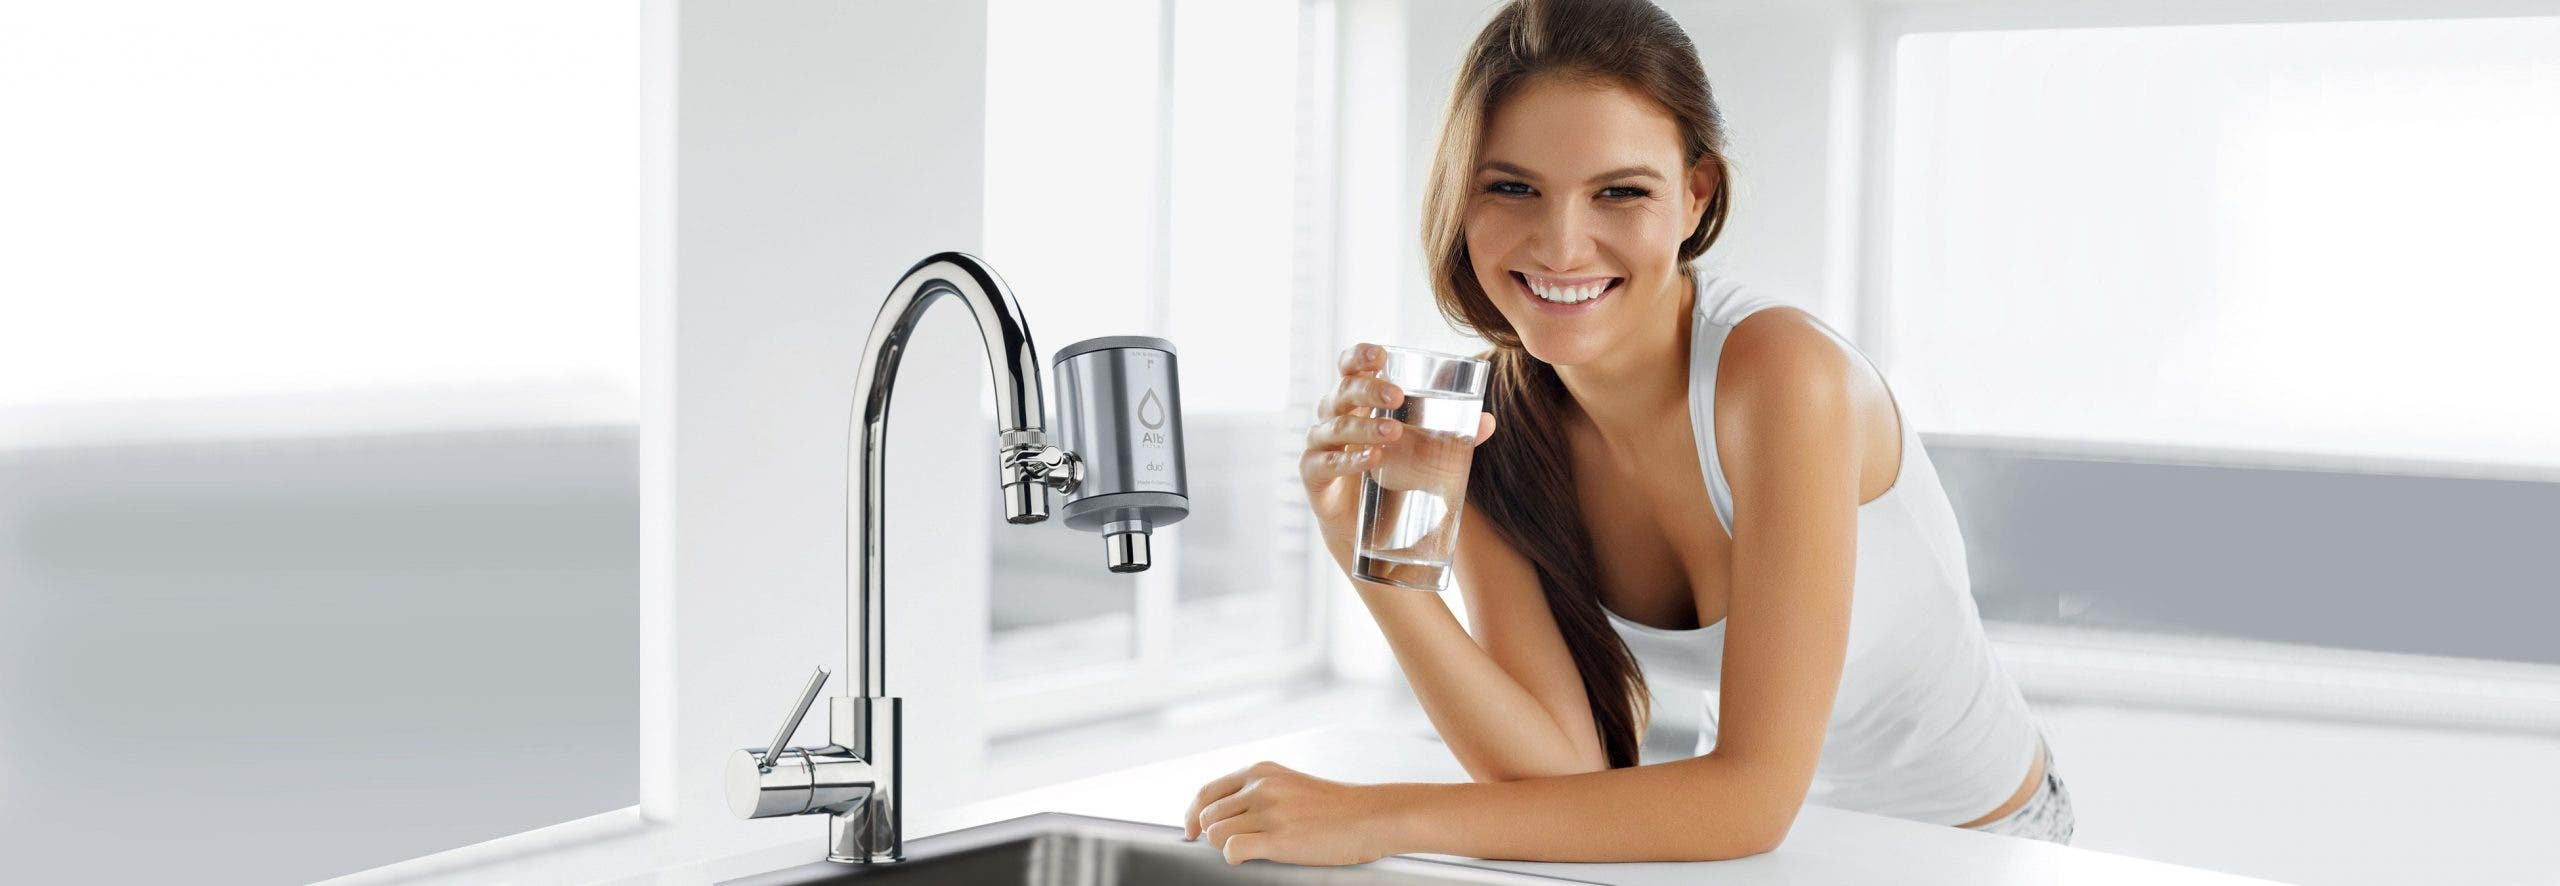 Eco Puro High Quality Water Filter System Spain